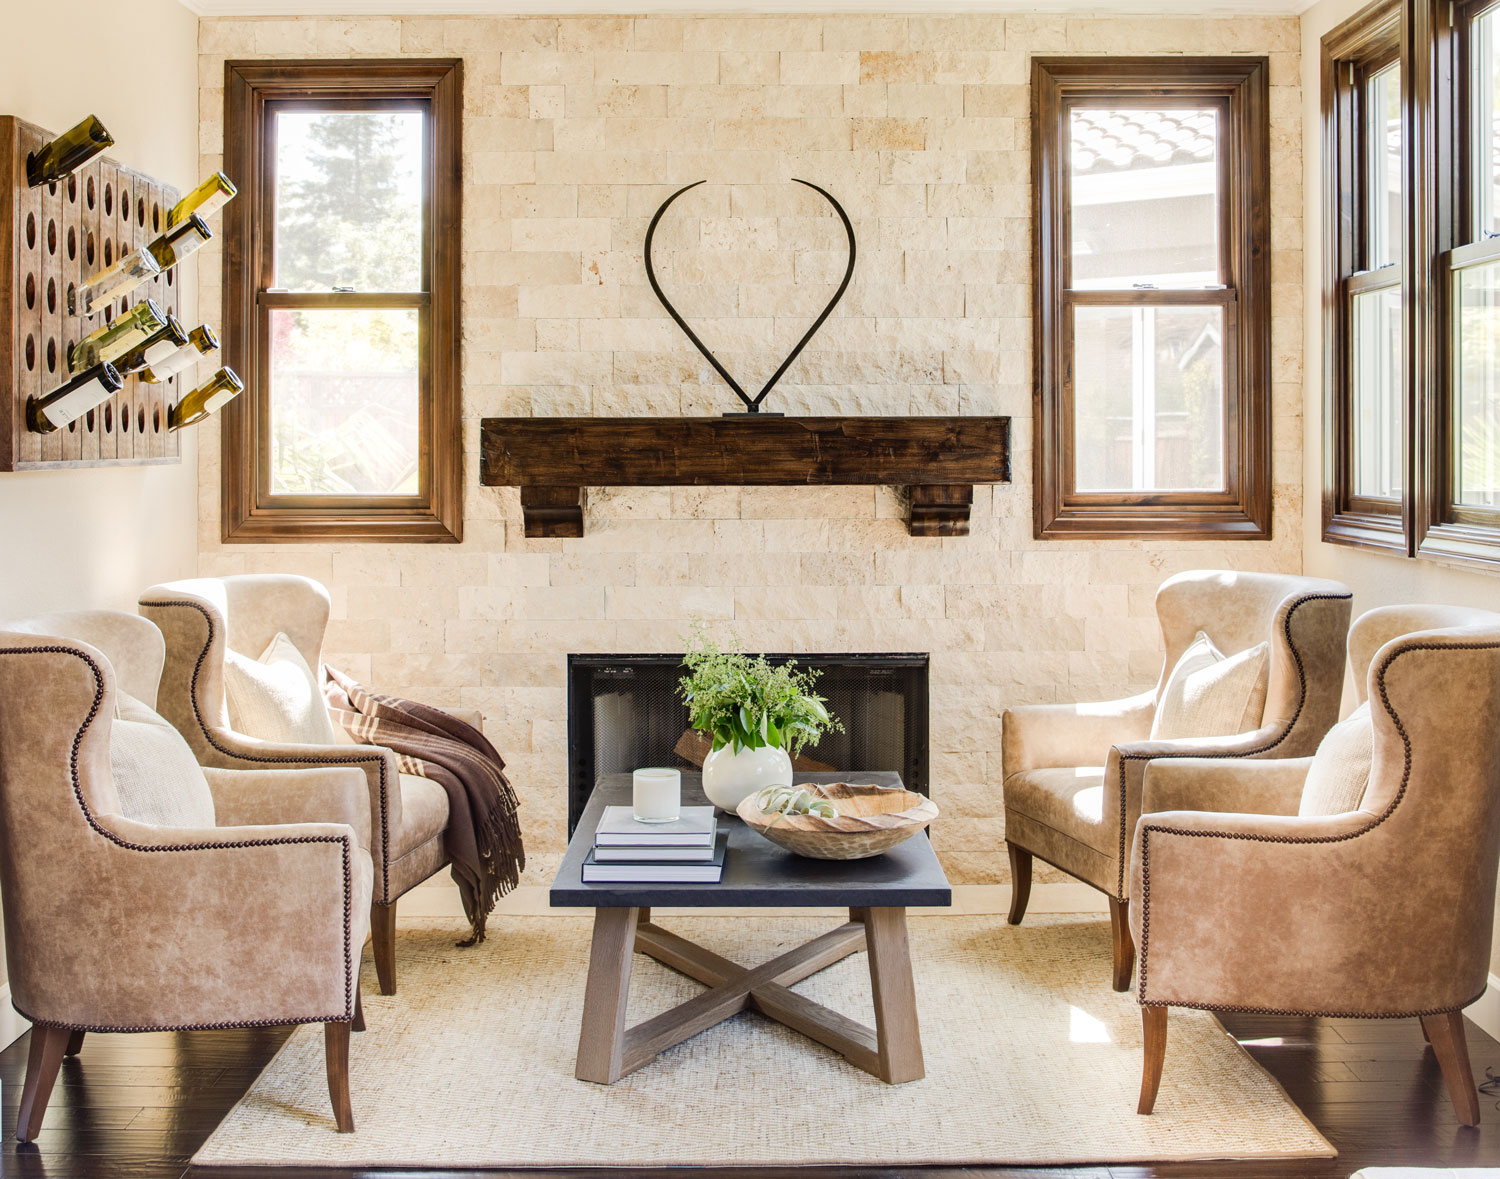 wine country living room style ideas 2017 home dressed in neutrals traditional stone walls a wooden mantel nubby rug and wing chairs upholstered luxurious faux leather infuse the s second sitting area with texture